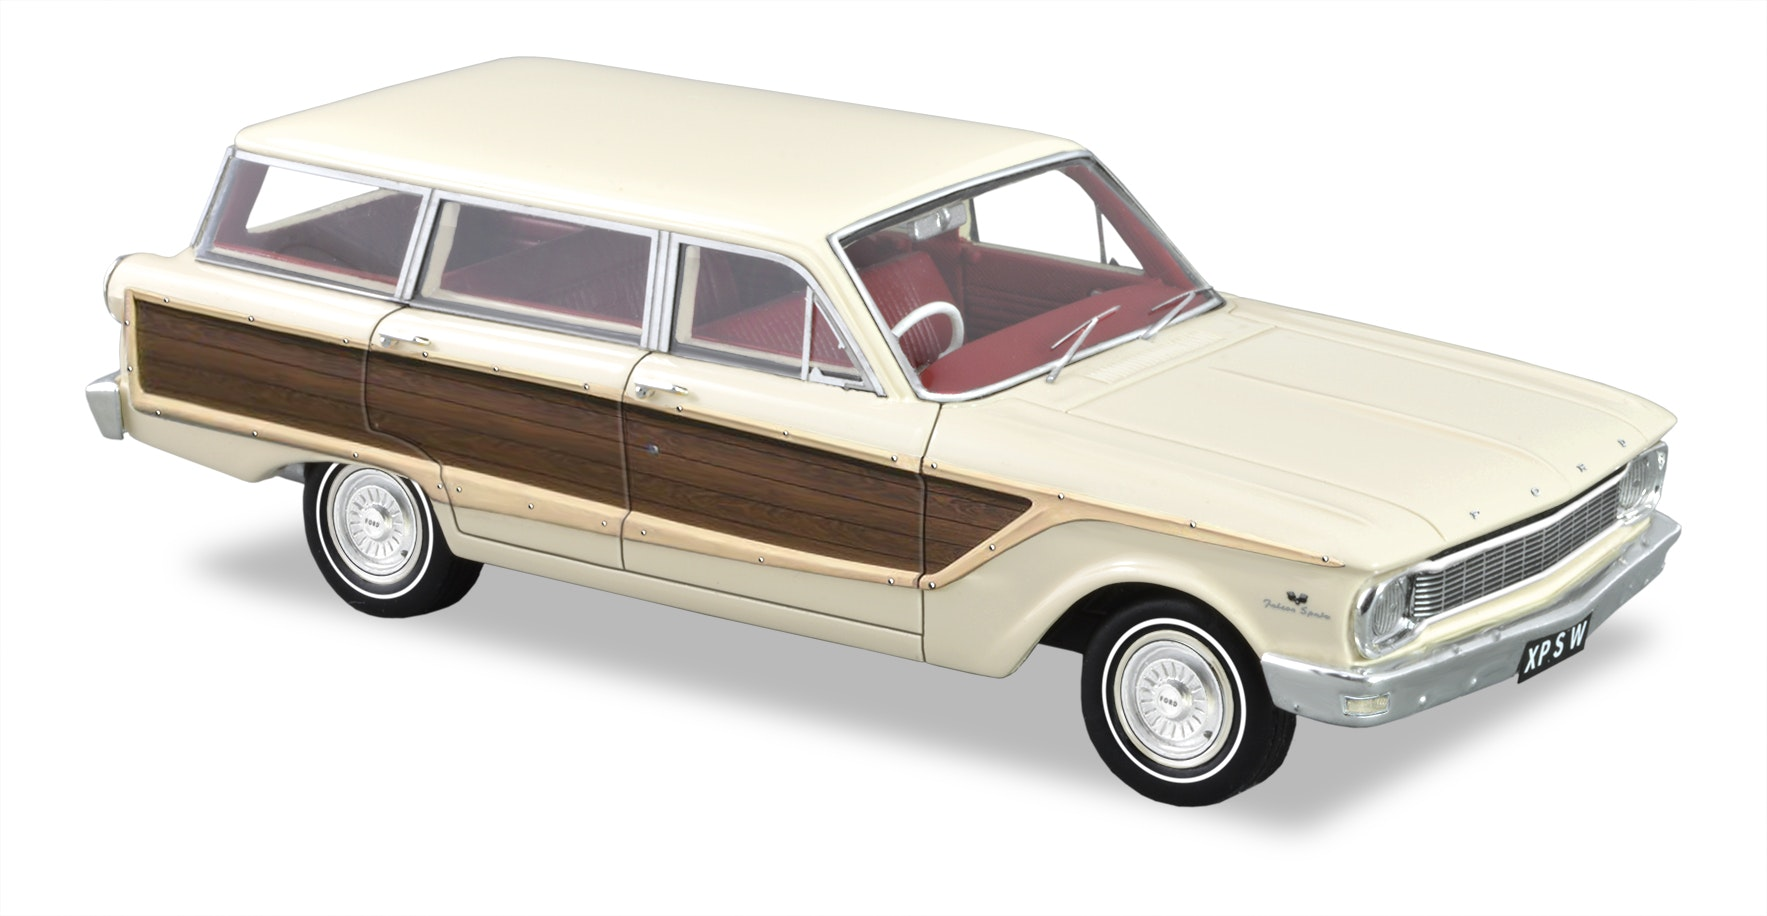 1965 Ford XP Falcon Squire Station Wagon – Arctic White